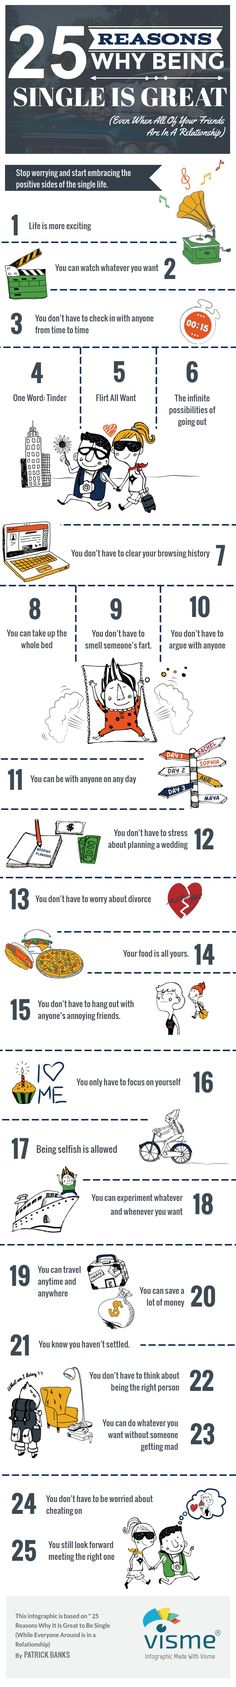 25 Reasons Why Being Single Is Wonderful (Even When All Of Your Friends Are In A Relationship) Infographic